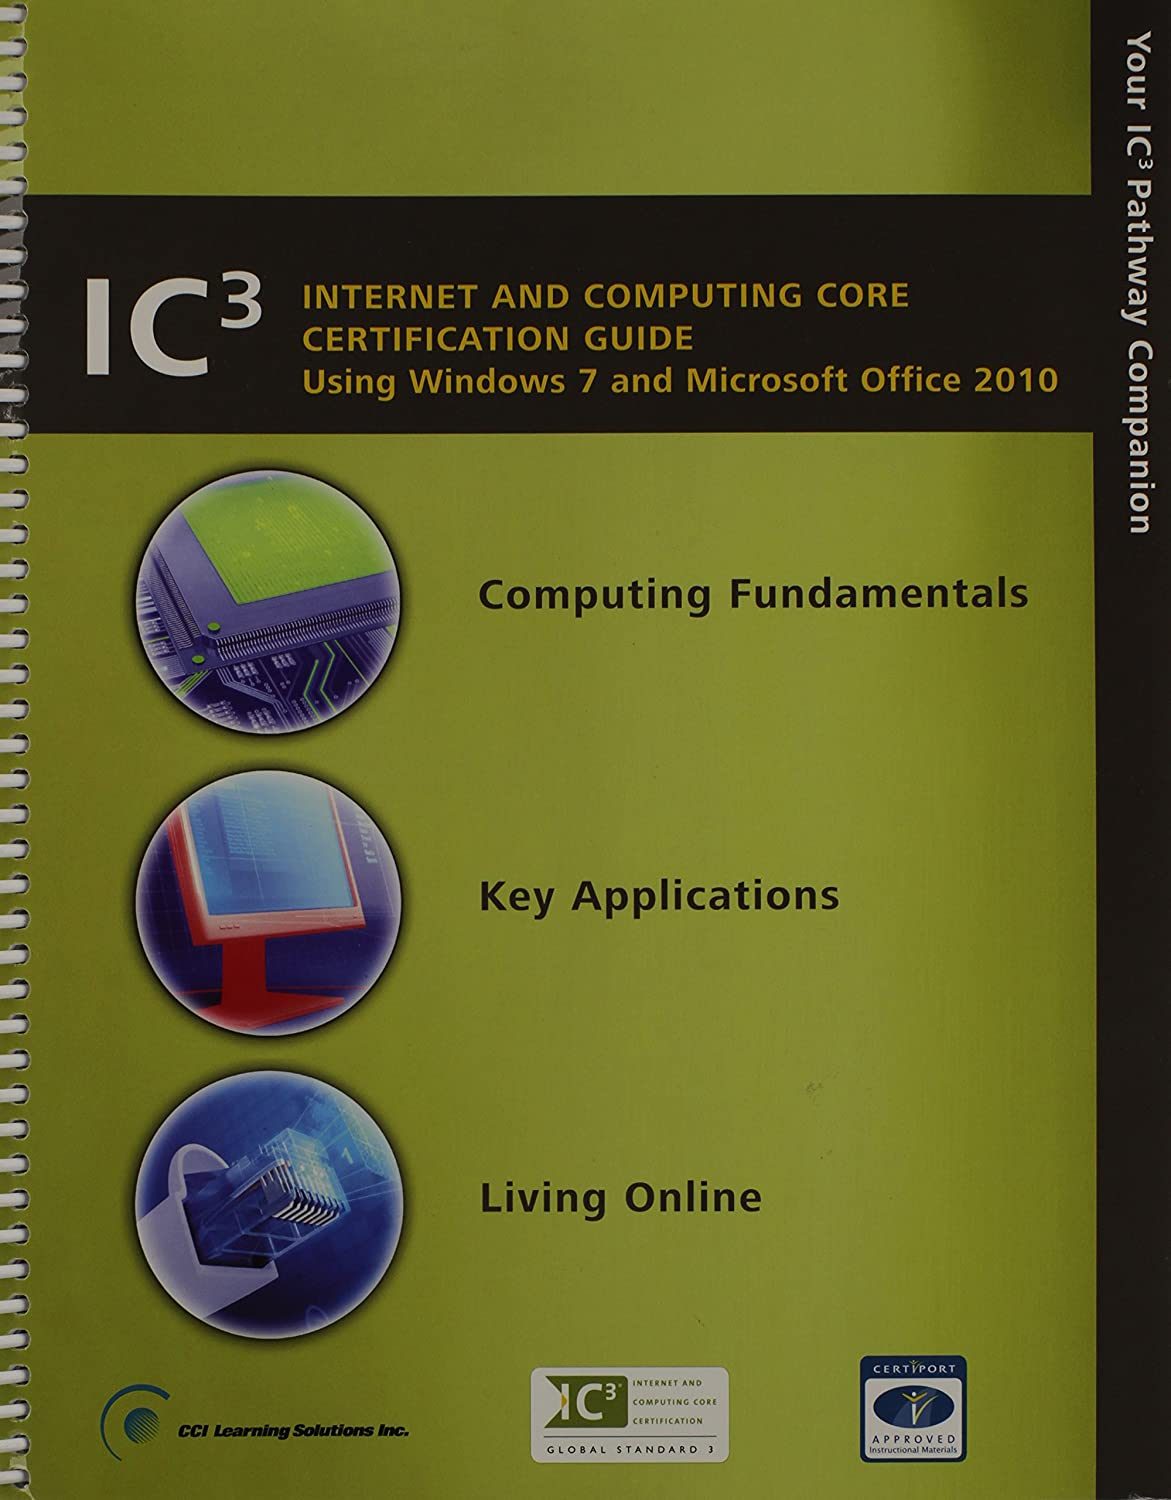 Amazon ic3 internet and computing core certification guide amazon ic3 internet and computing core certification guide using windows 7 and microsoft office 2010 certiport approved health personal care 1betcityfo Gallery